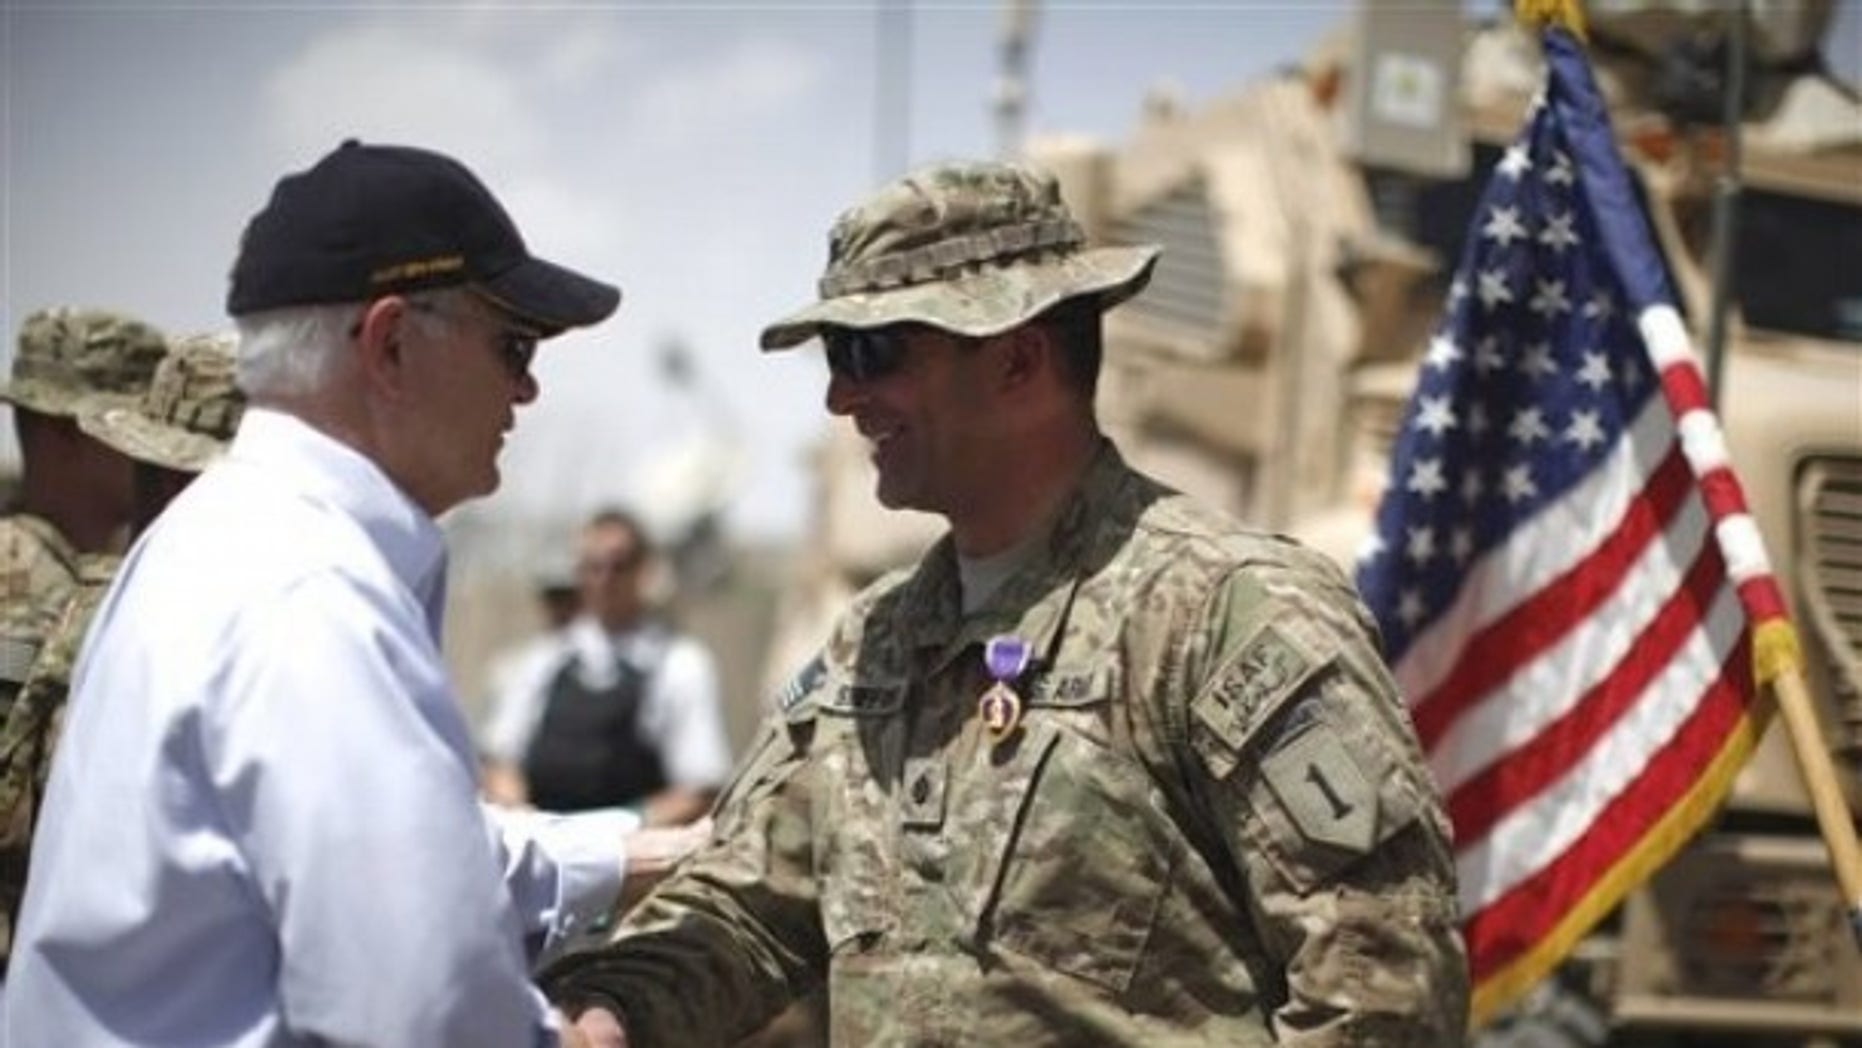 June 6: Defense Secretary Robert Gates shakes hands with U.S. Army LtCol. Alan Streeter after awarding him the Purple Heart Medal for wounds he received in combat during a ceremony at Combat Outpost Andar in Ghazni Province, Afghanistan.